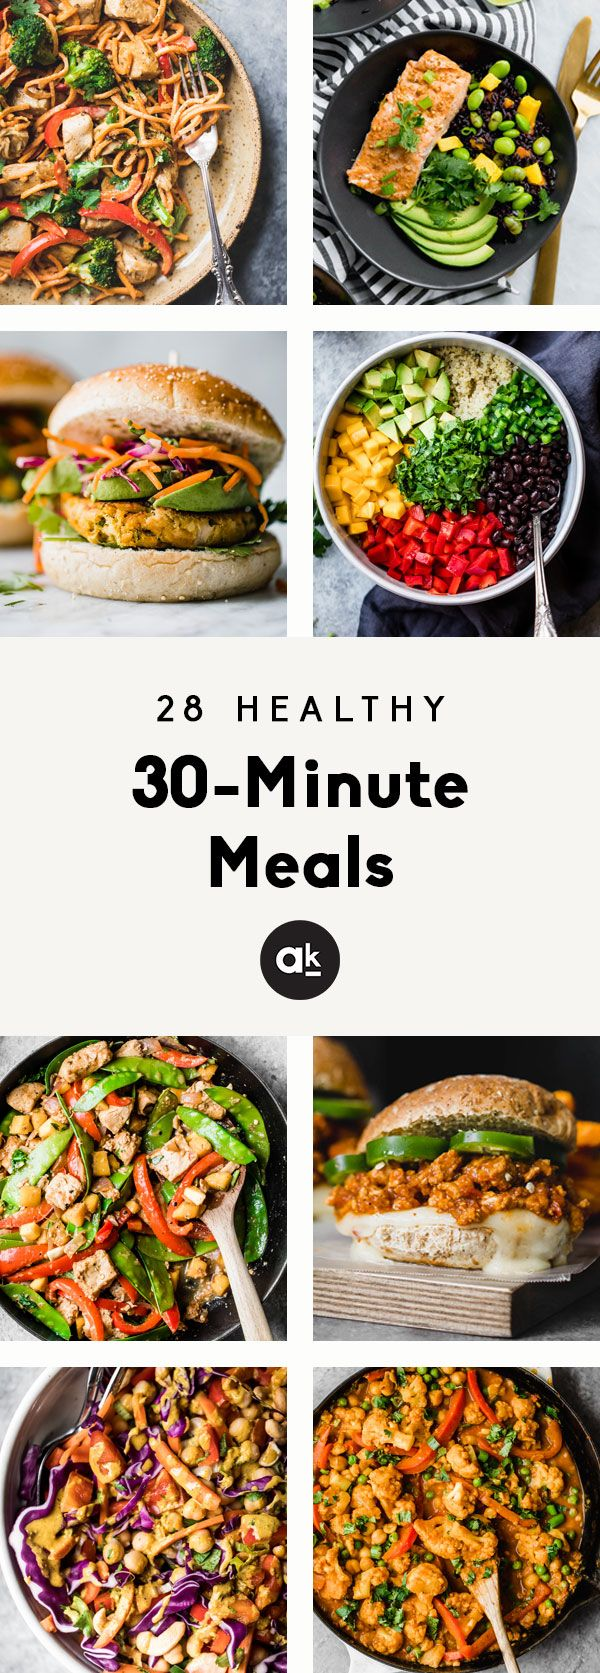 Healthy 30-Minute Meals to Make ASAP images